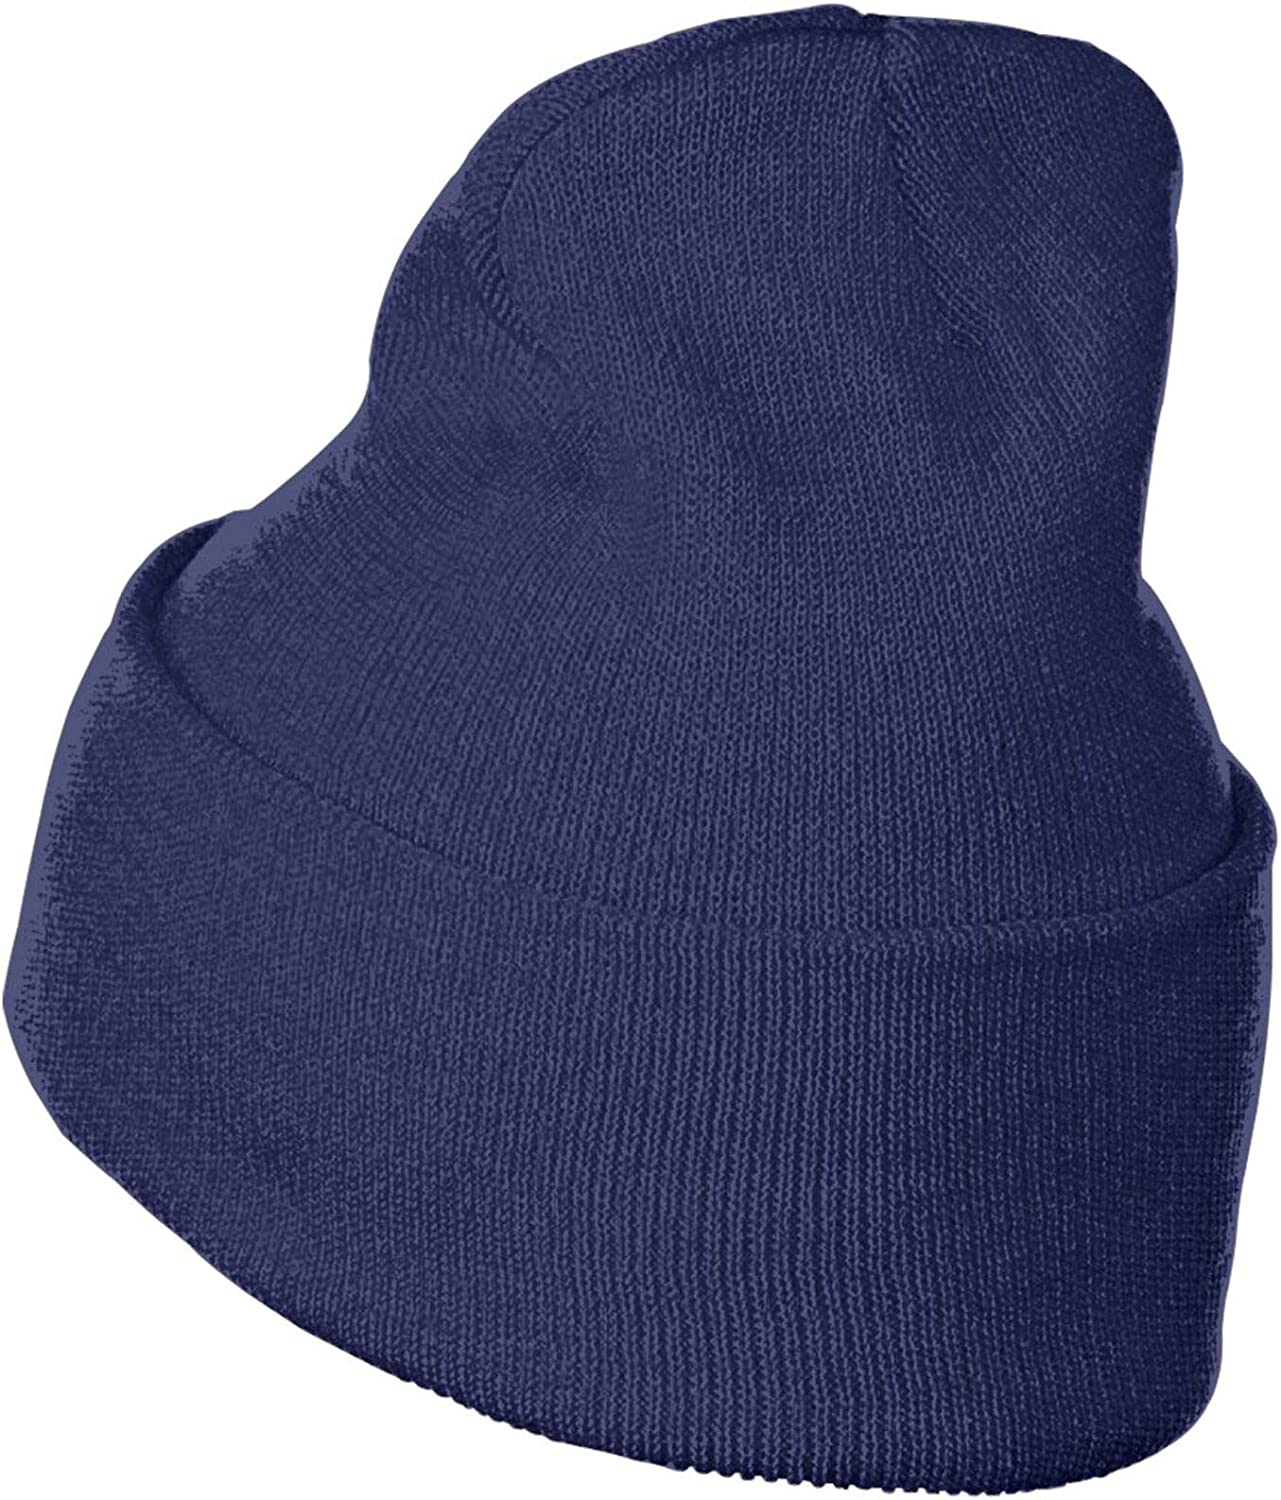 Kcoremia 4hunnid Comfortable Beanie Hat Winter Solid Color Warm Knit Ski Cap Black